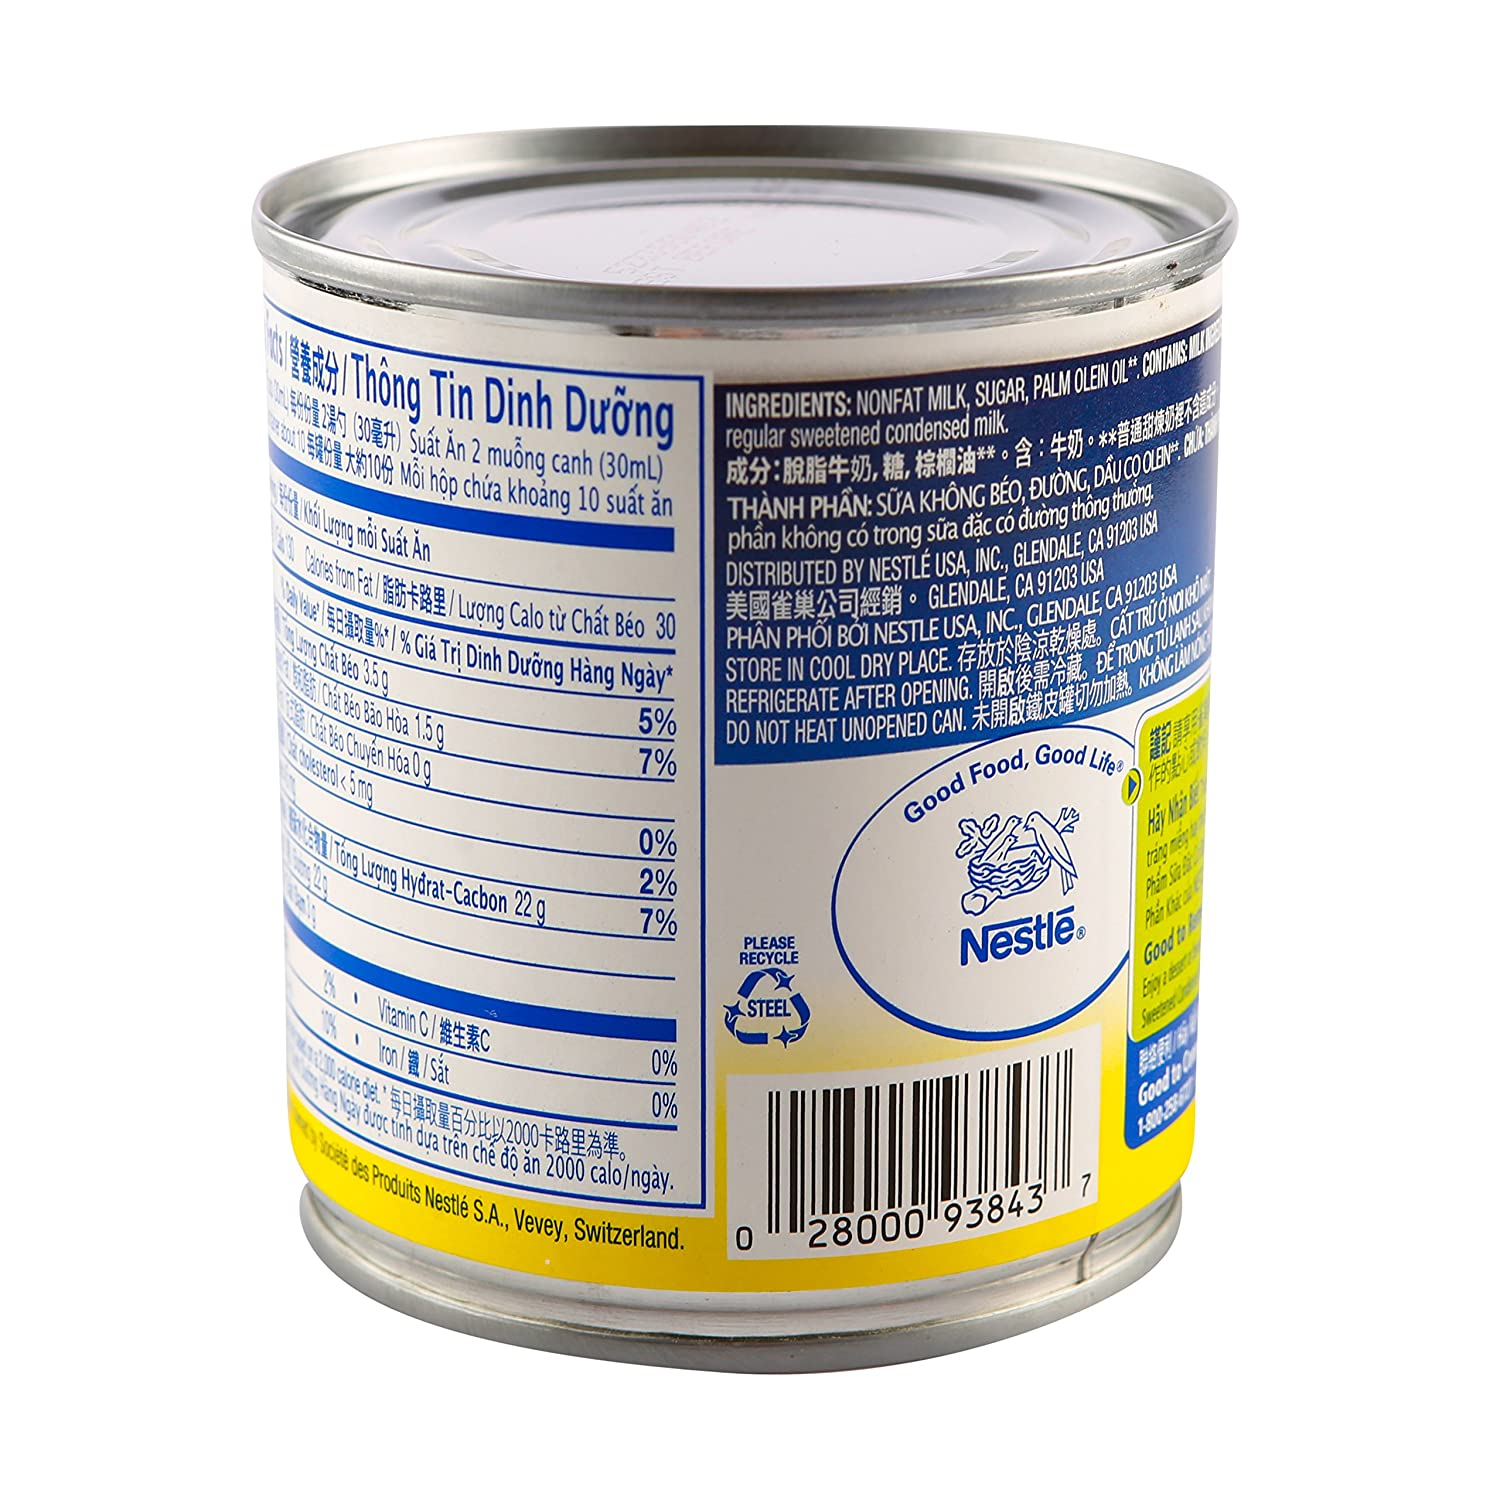 NESTLE Sweetened Condensed Filled Dairy Product / San Pham Sua Dac Co Duong Va Ca Thanh Phan Khac 14 OZ